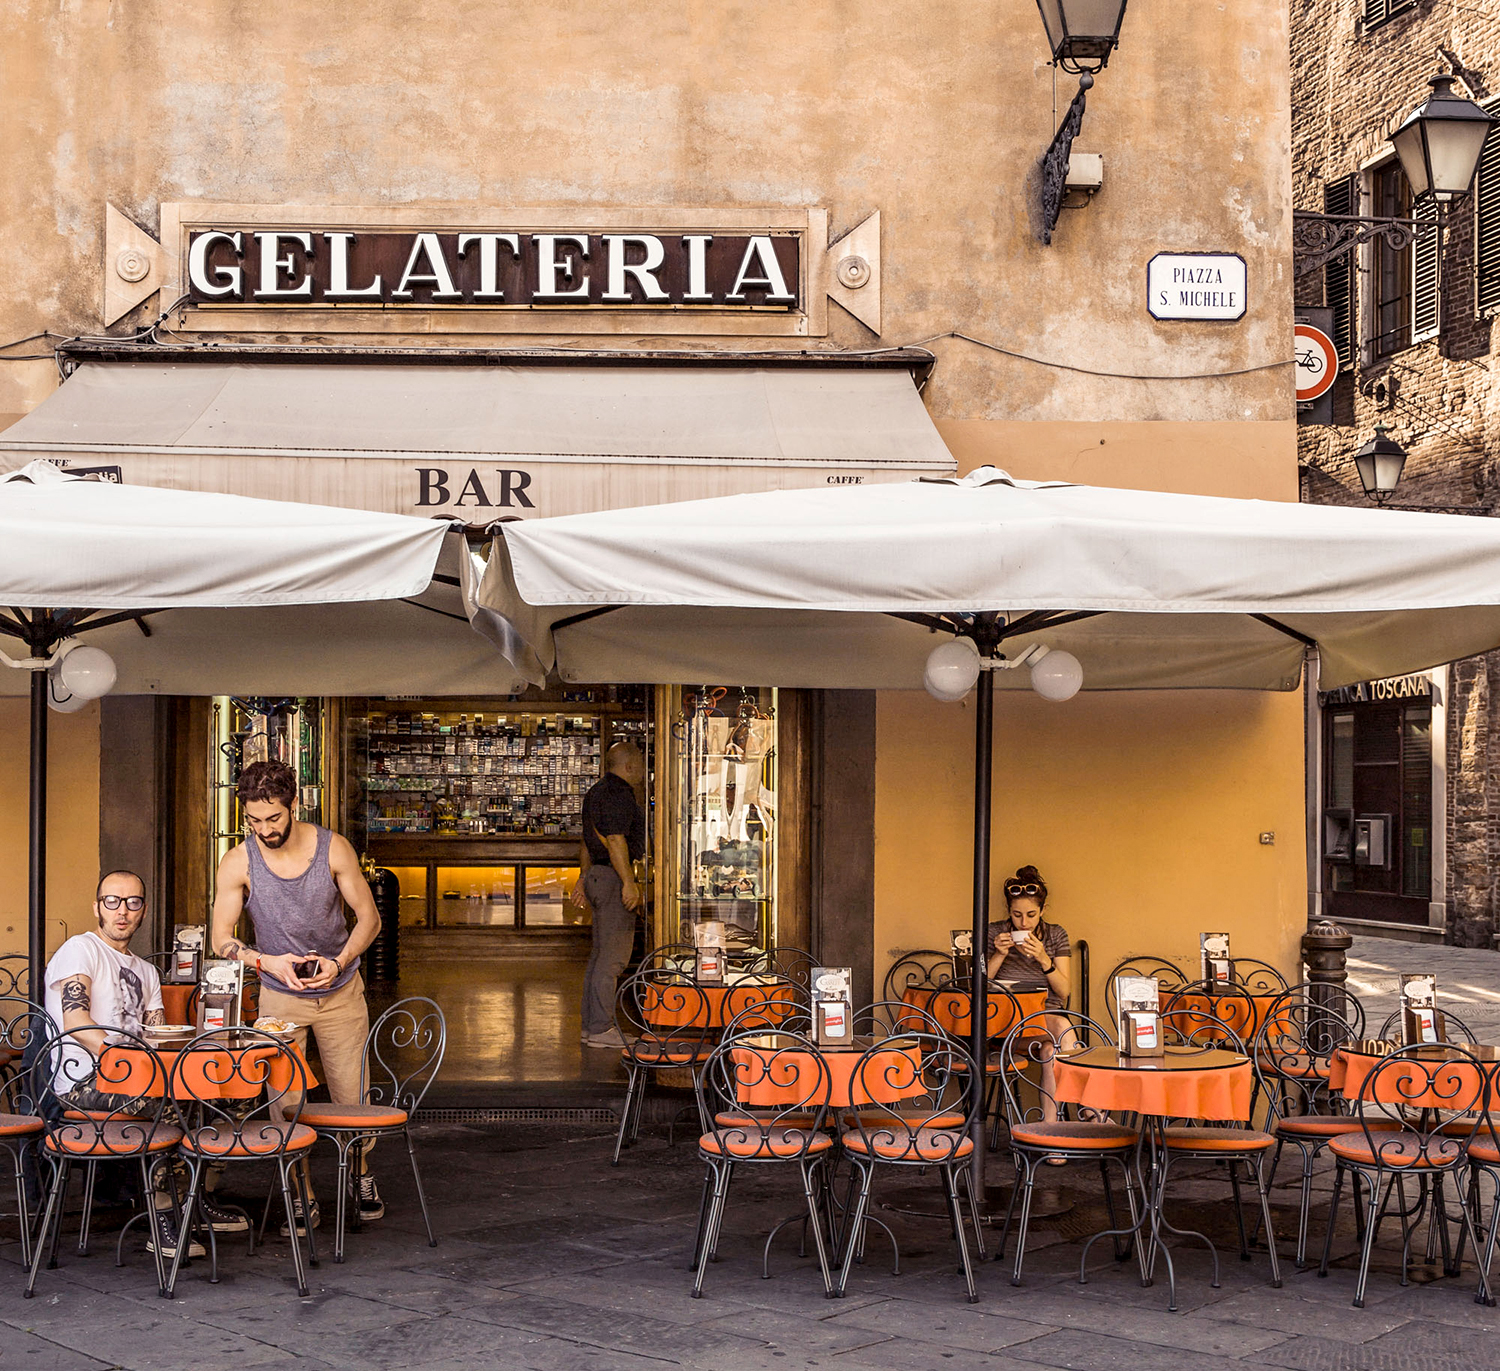 italian gelateria storefront with outdoor seating